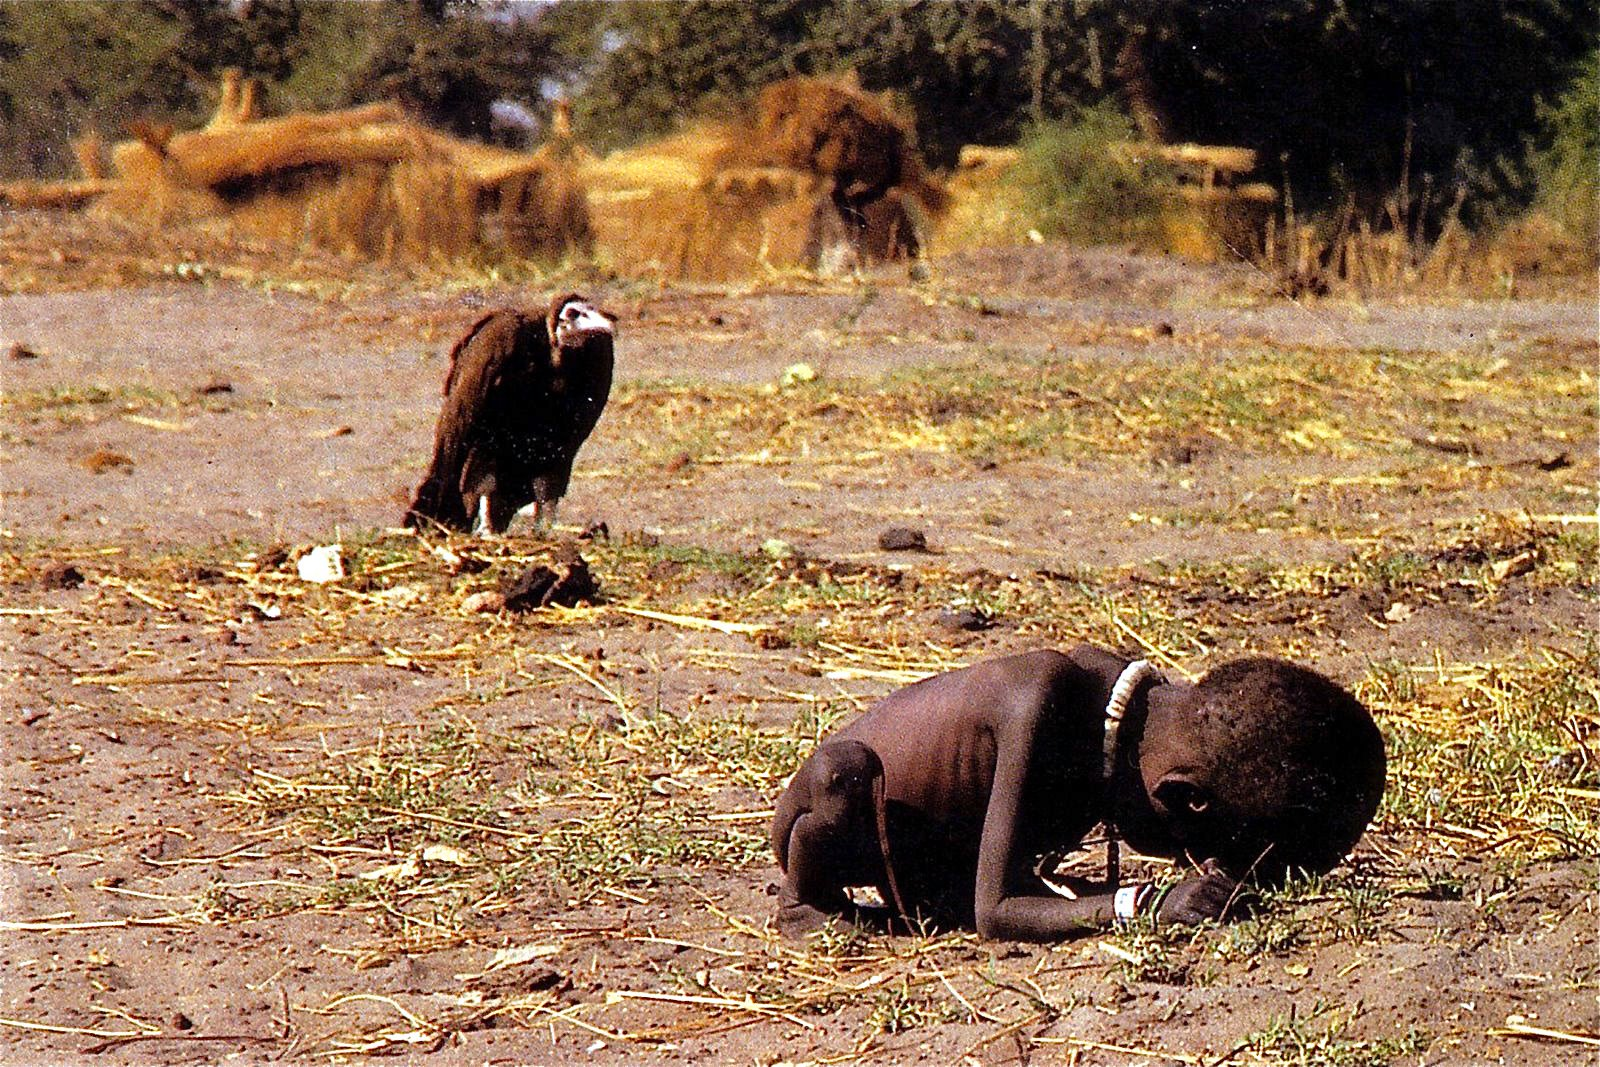 africa child starving vulture